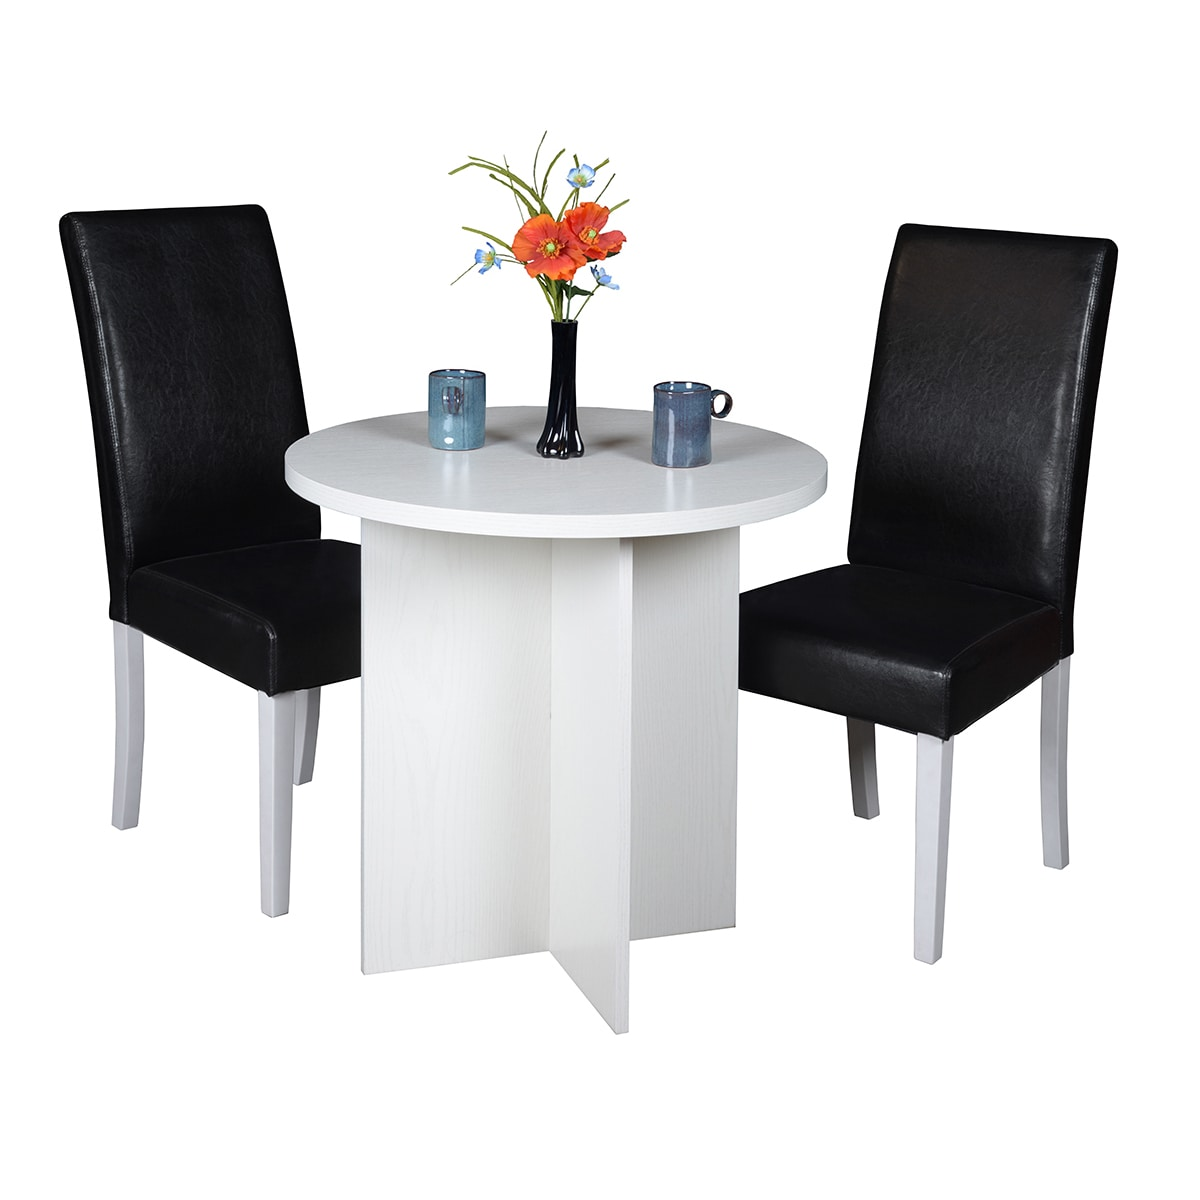 Shop Regency Niche Modern 30-inch Round Table and 2 Tyler Dining ...